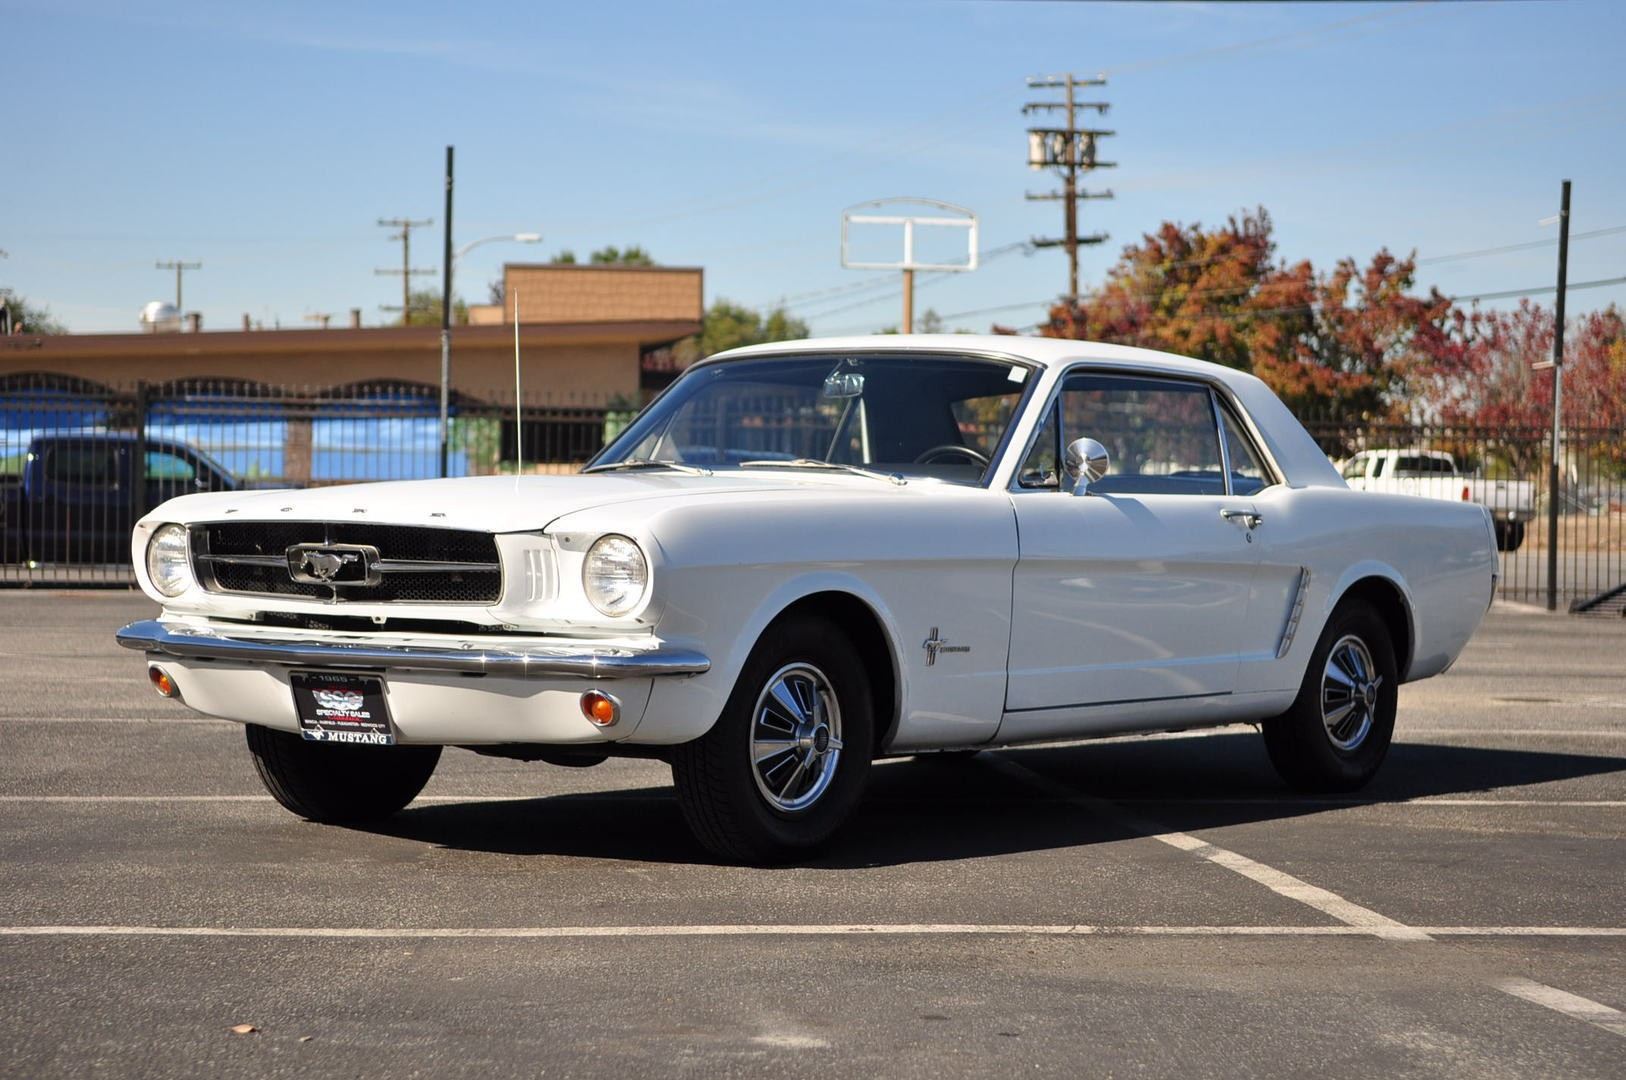 1965 ford mustang no trim field 2 door hardtop for sale